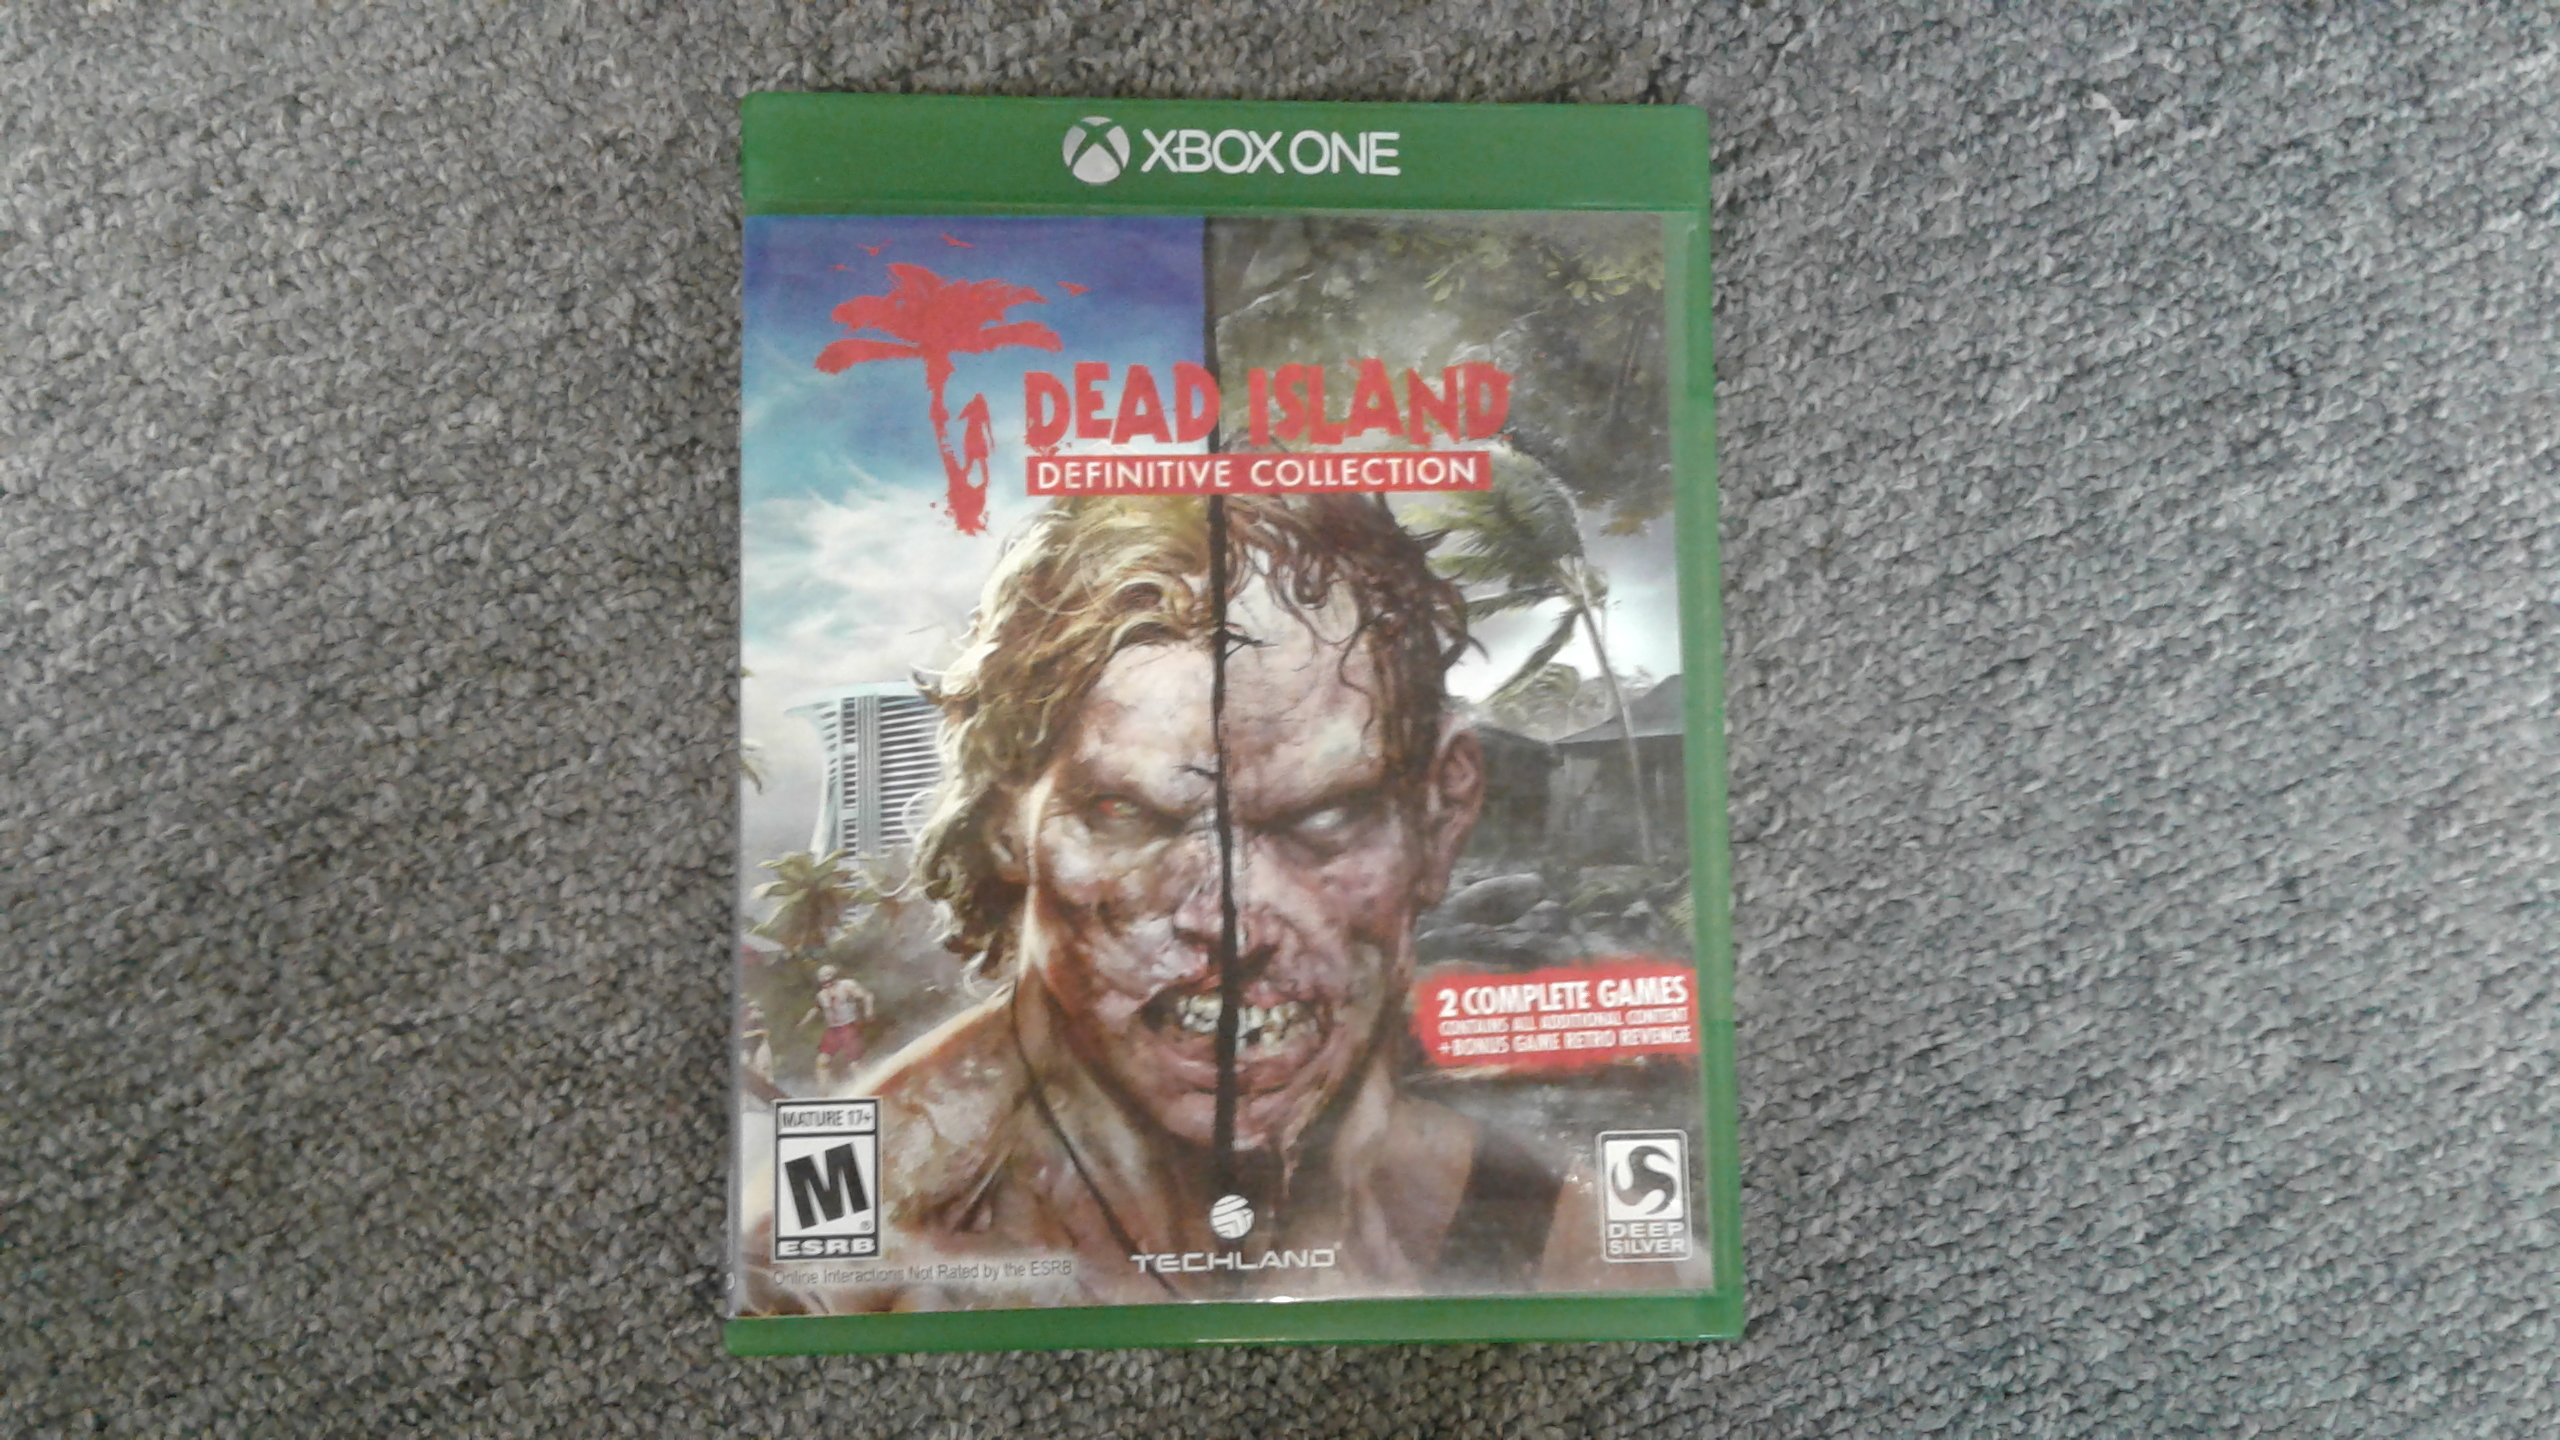 Dead Island Definitive Collection - XBOX ONE - Game